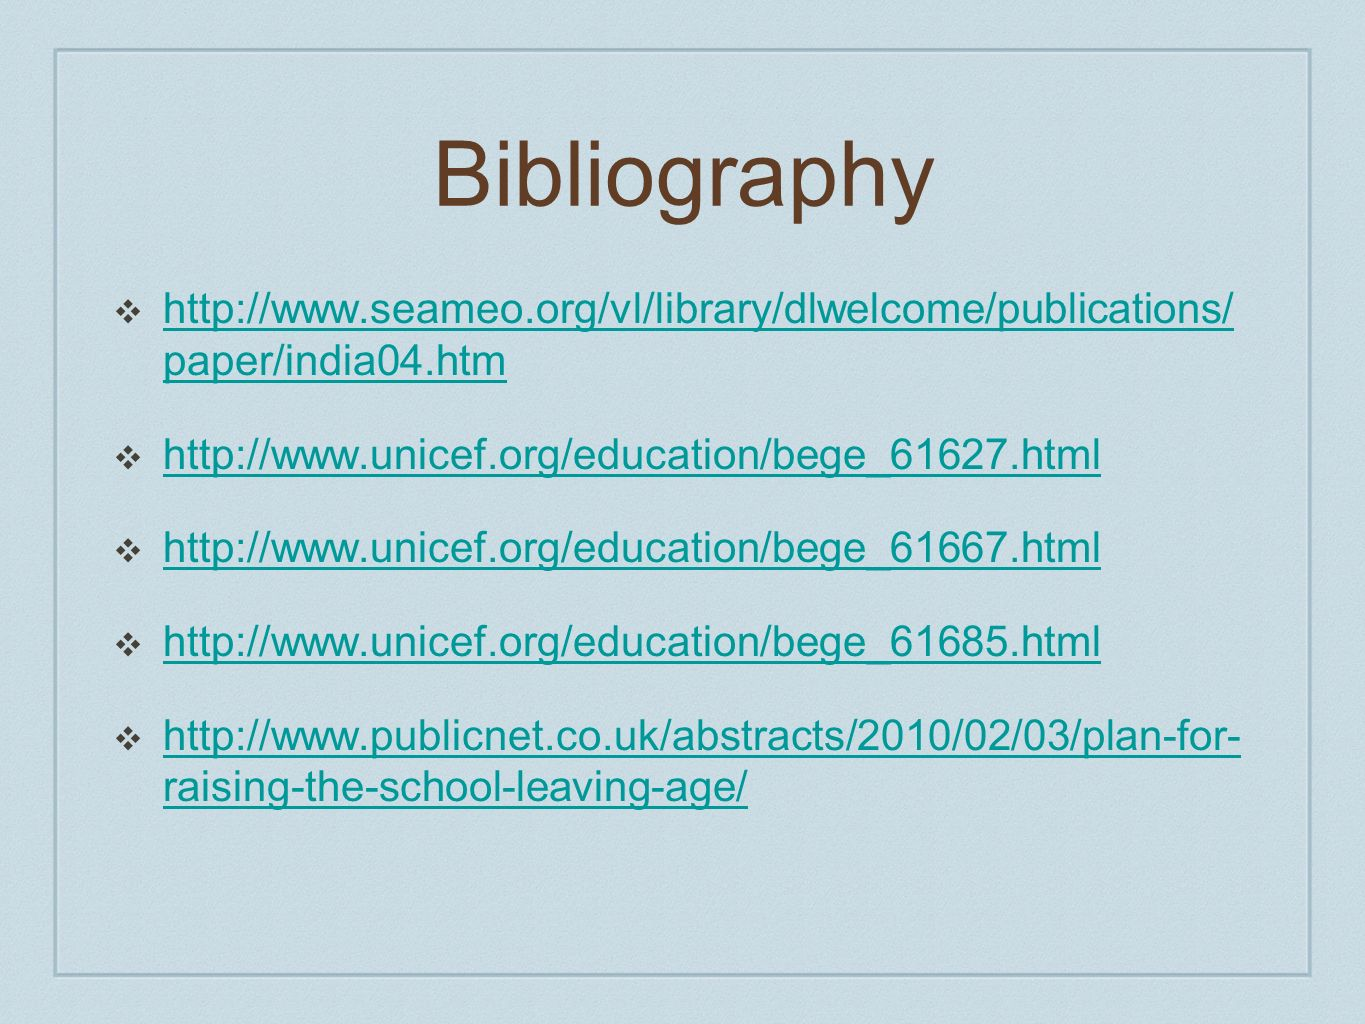 Bibliography http://www.seameo.org/vl/library/dlwelcome/publications/ paper/india04.htm. http://www.unicef.org/education/bege_61627.html.